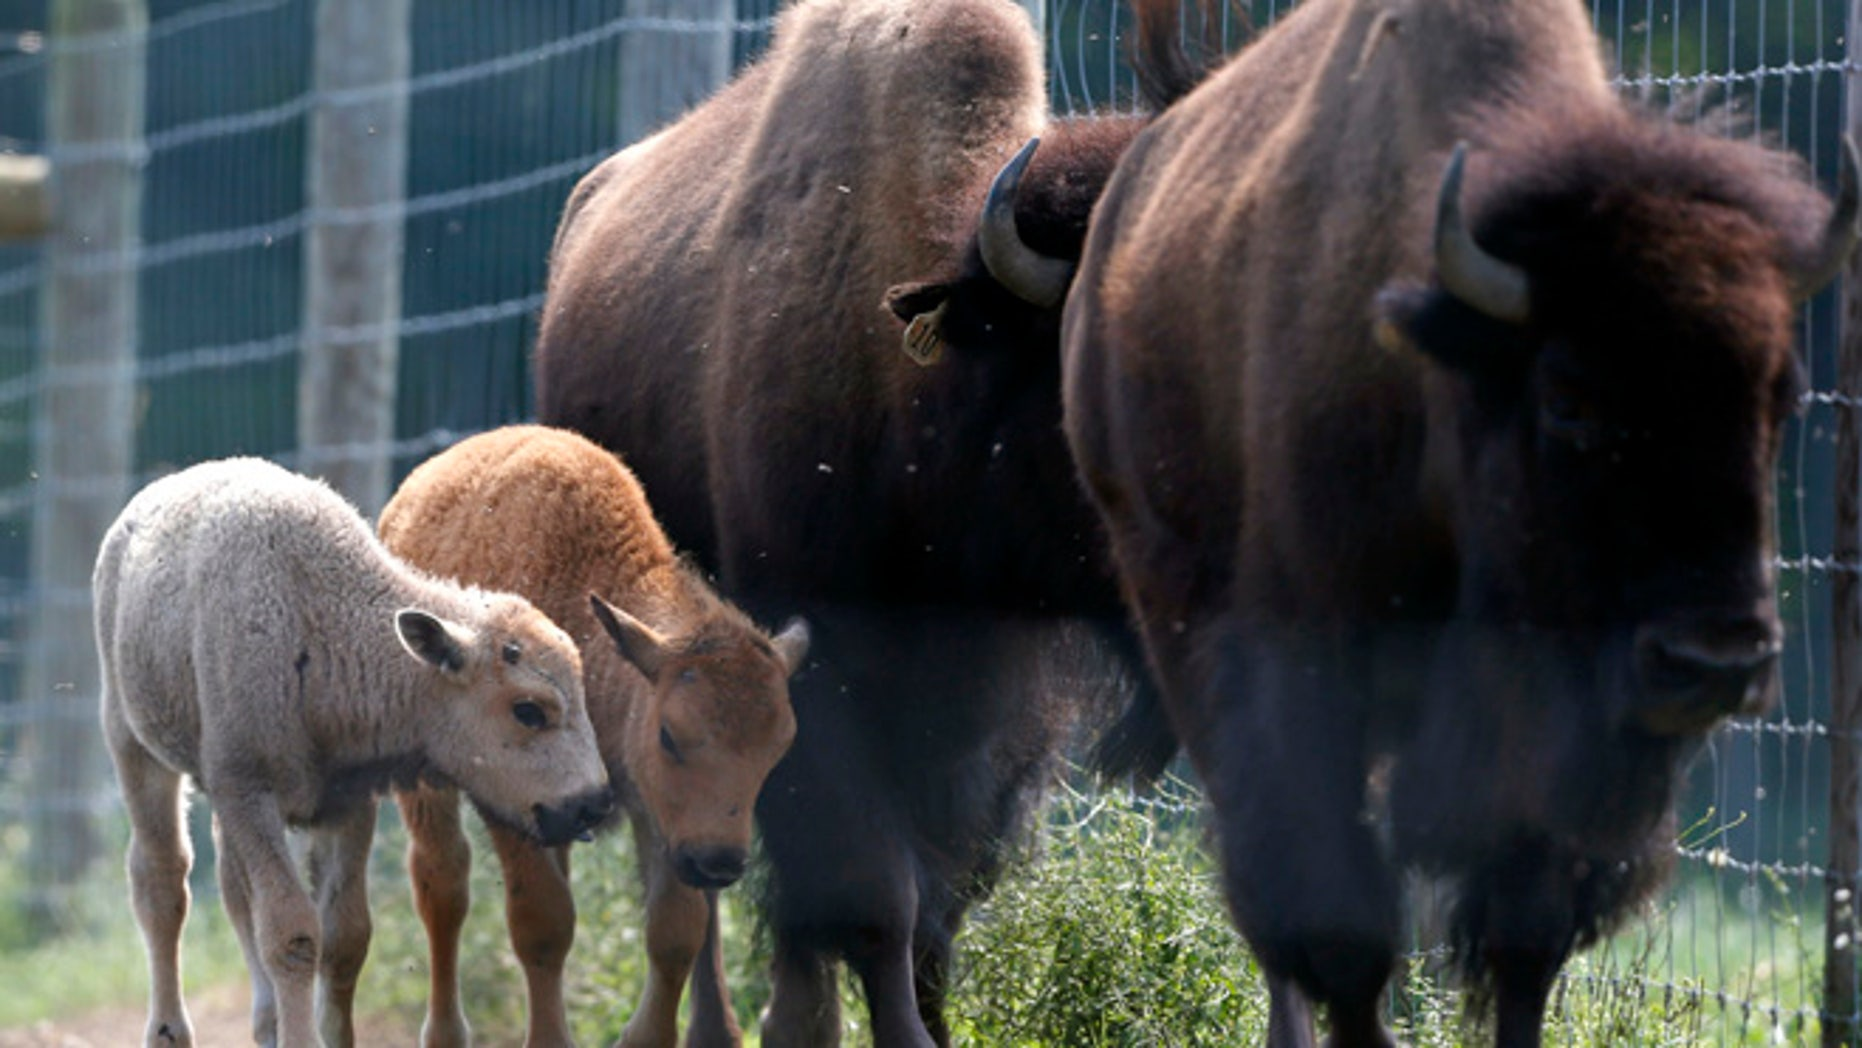 July 18, 2012: In this file photo, a white bison calf, left, walks in a field with its mother, right, and another calf at the Mohawk Bison farm in Goshen, Conn.